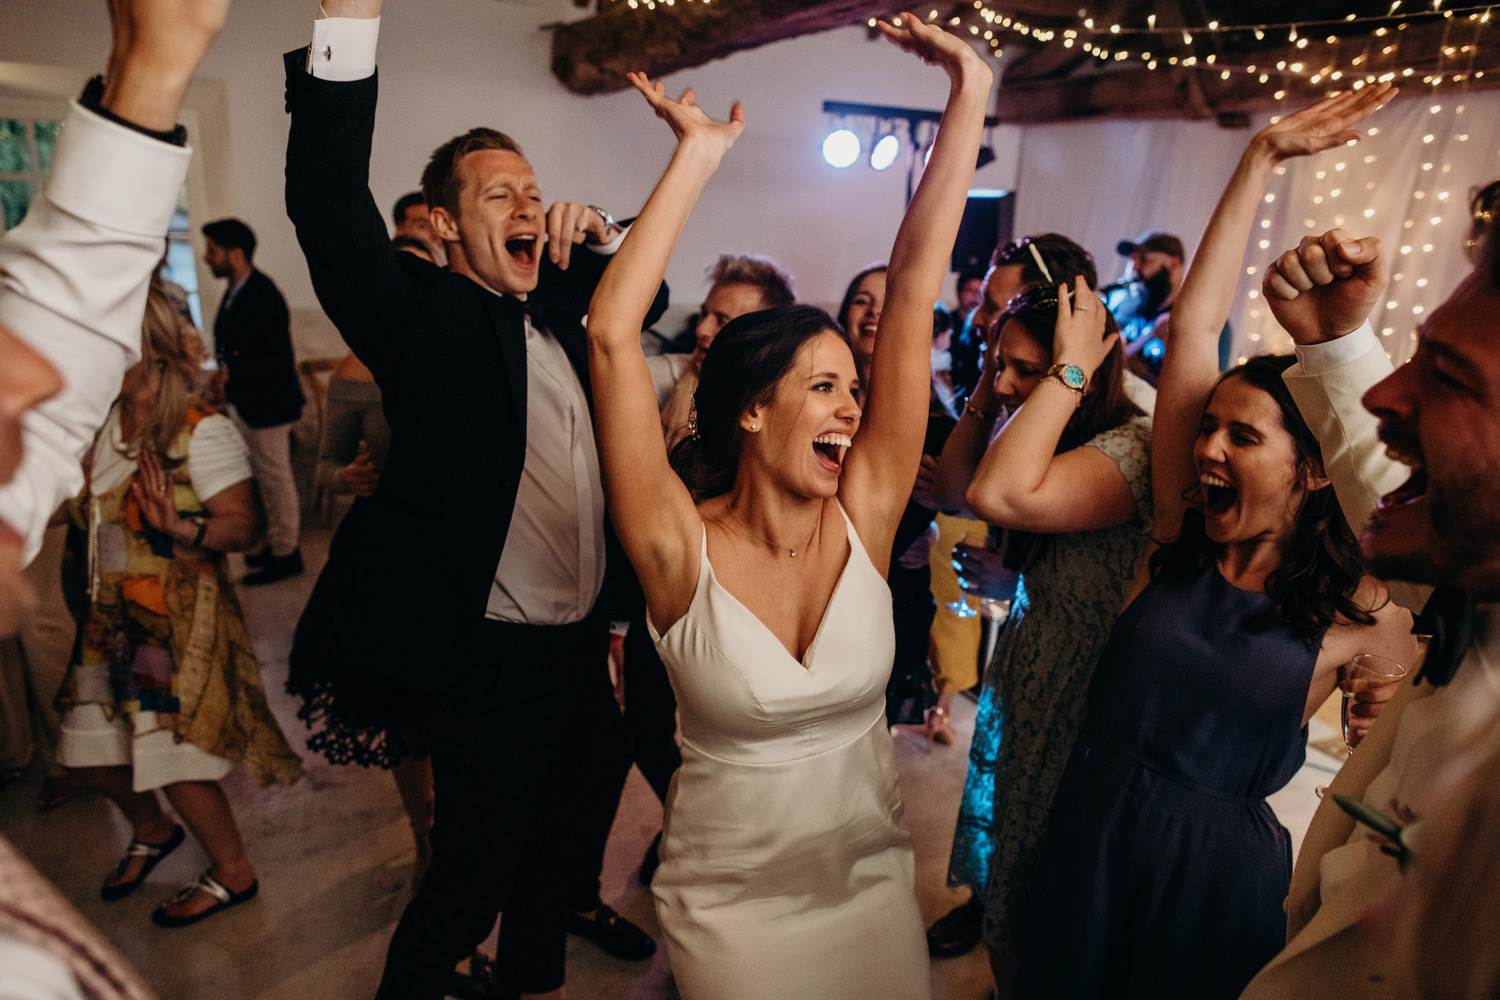 bride throws hands in air at party